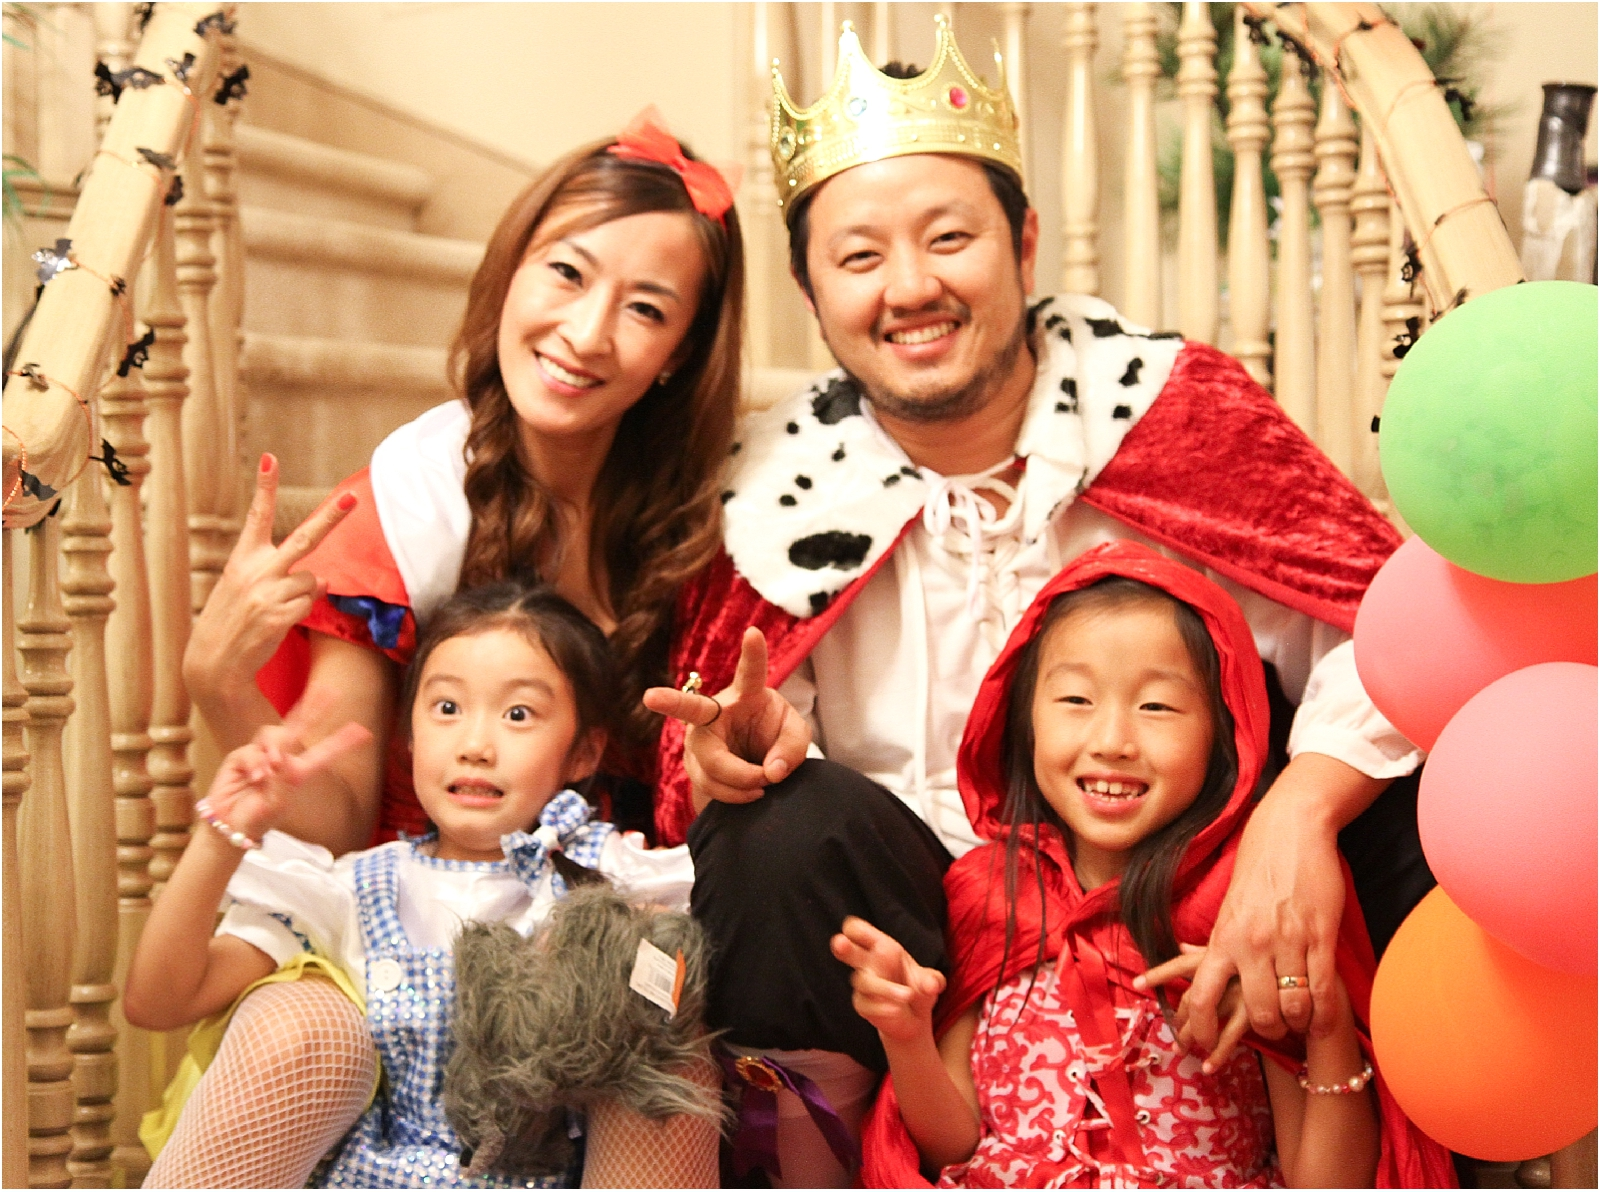 family-halloween-costume-fairytale